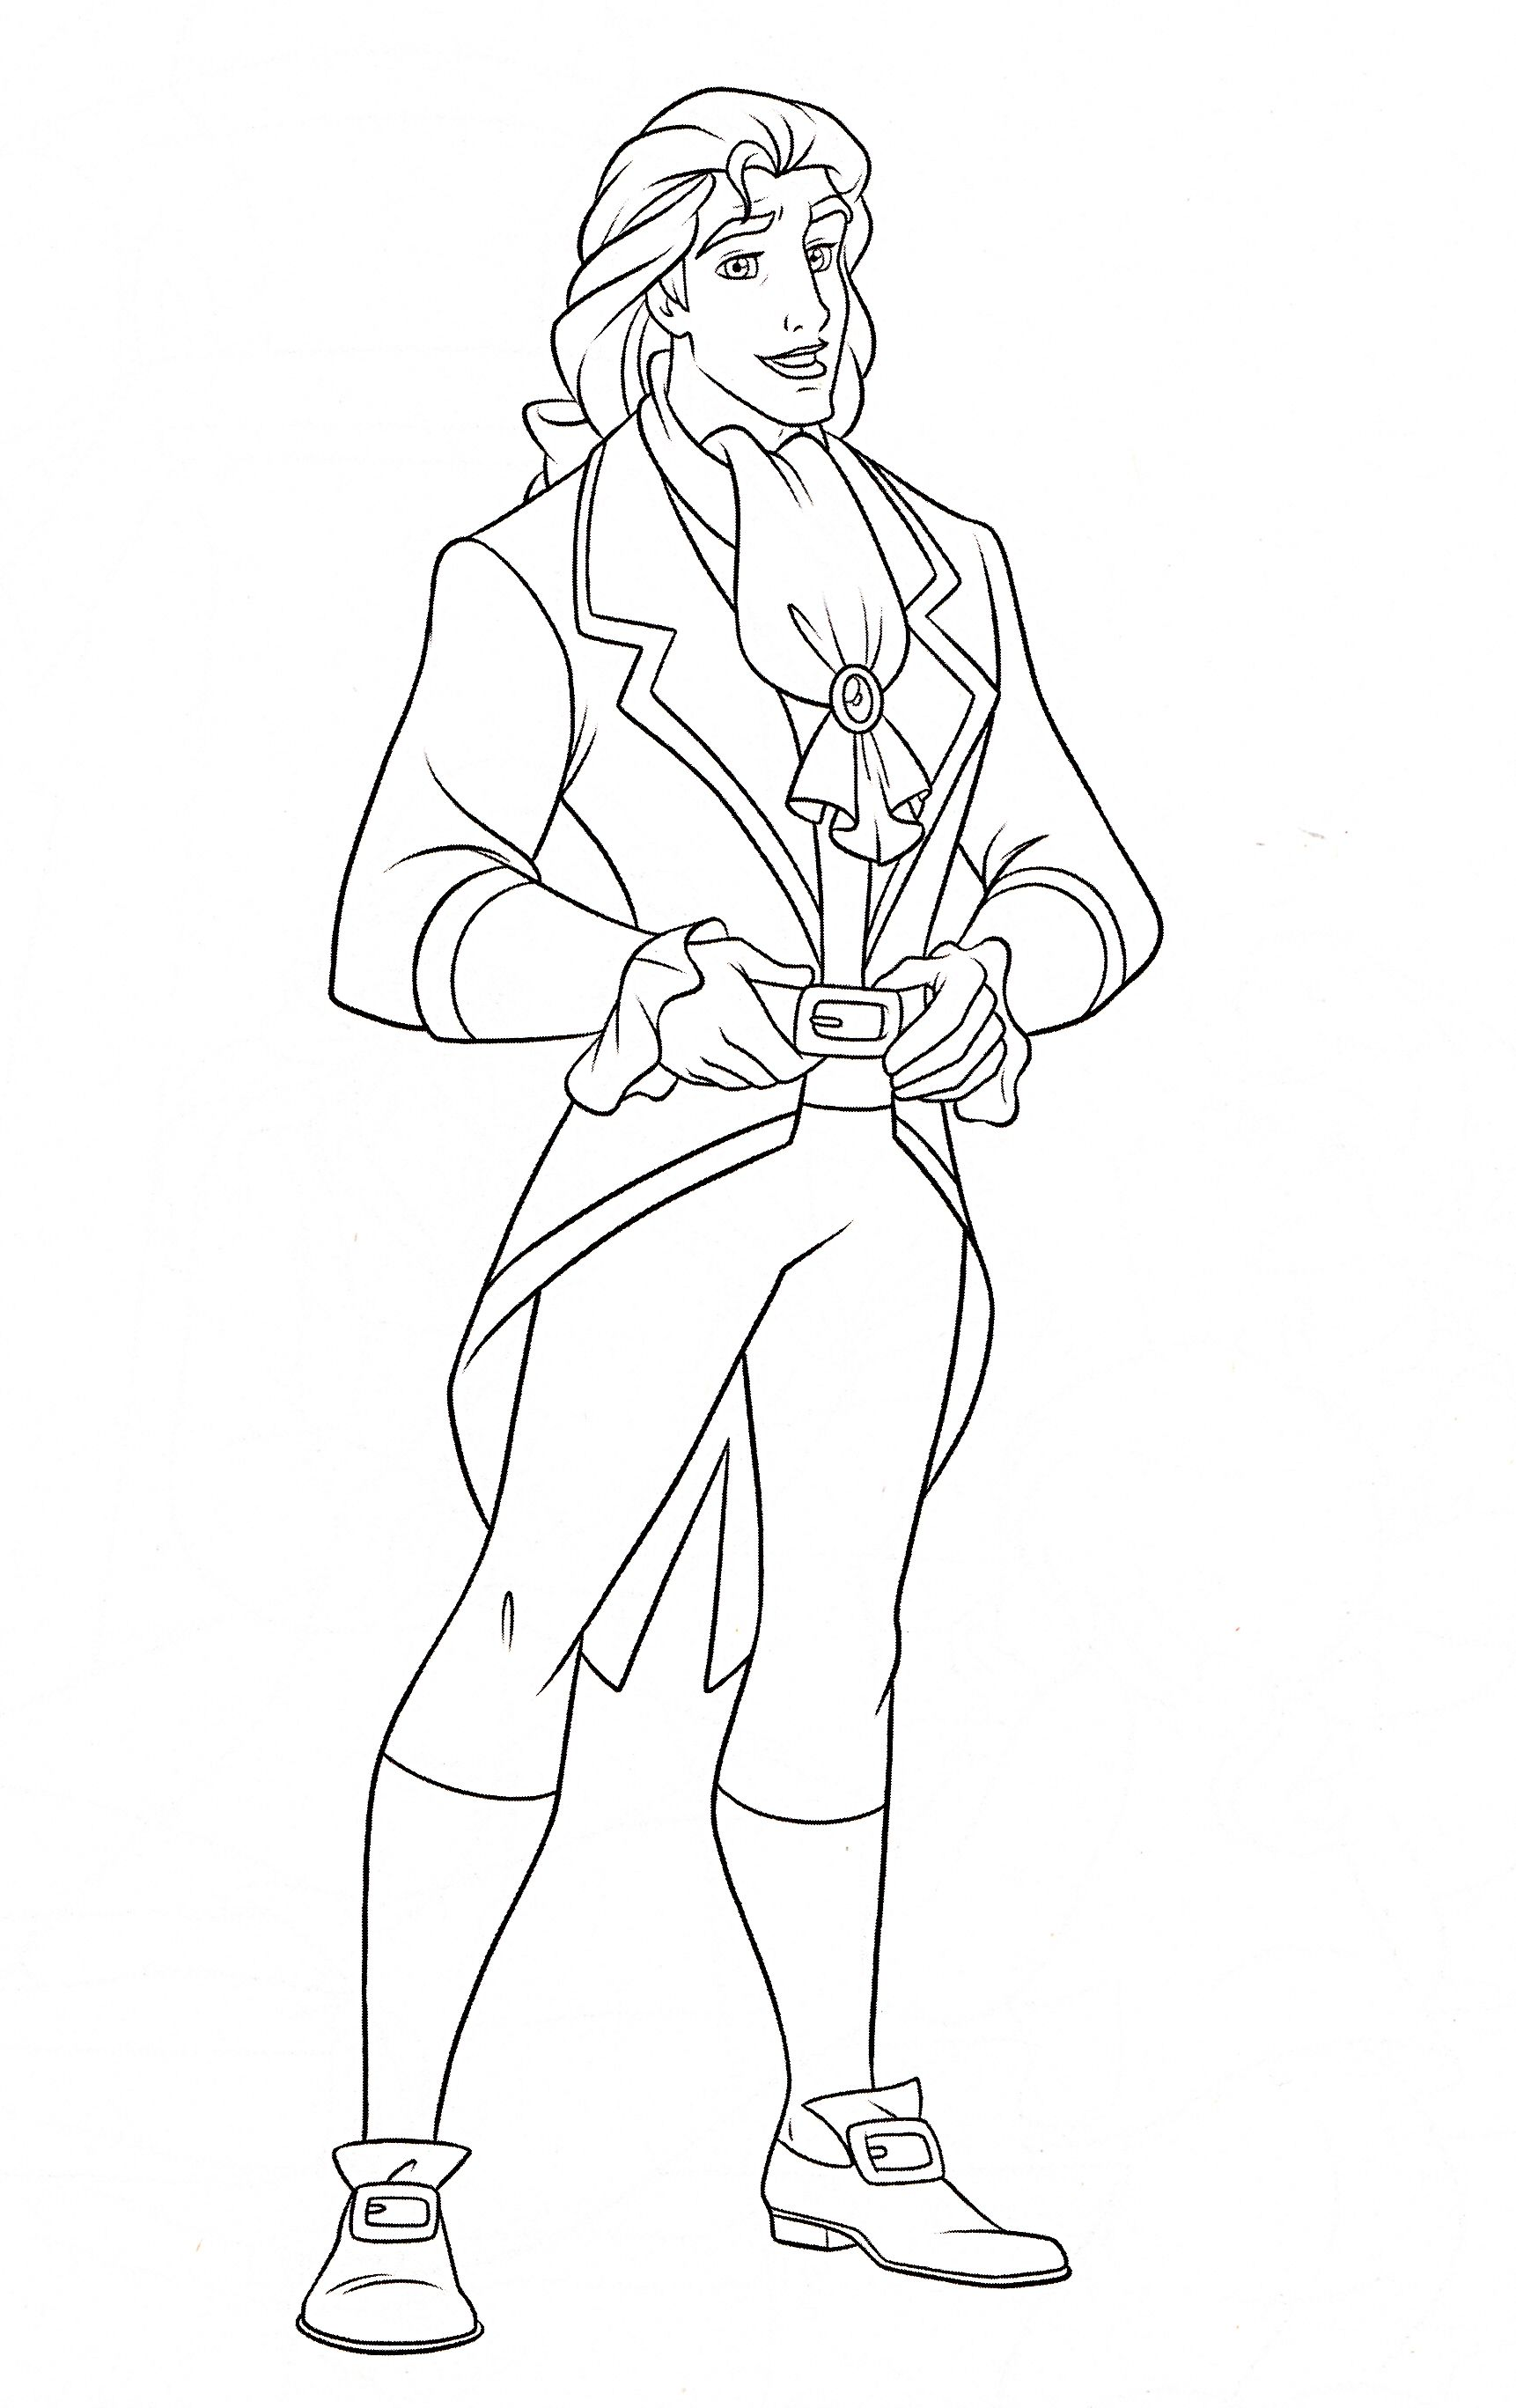 Disney Beauty and the Beast Coloring Page | Beauty and the Beast ...